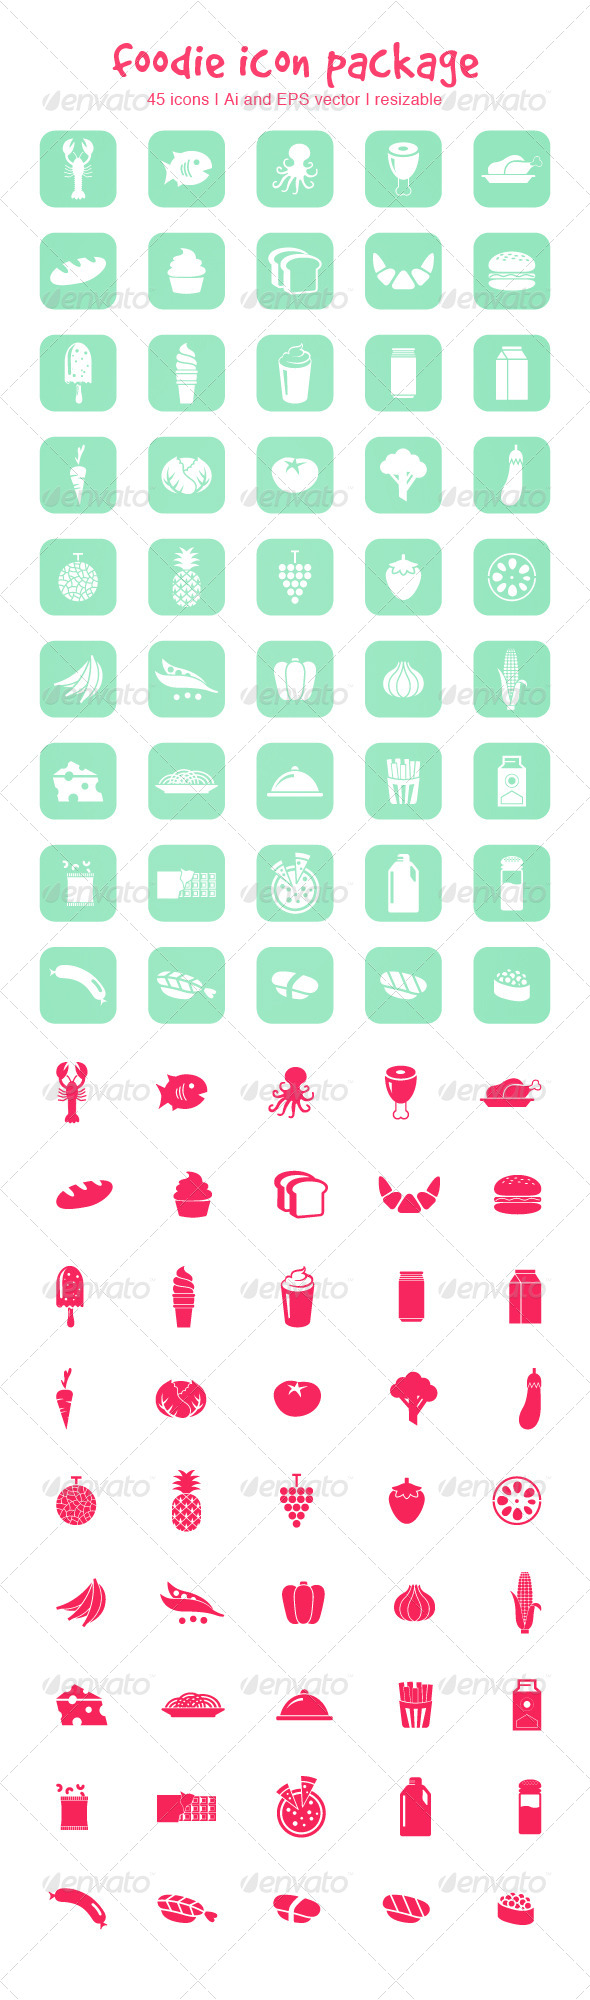 Foodie Icon Package